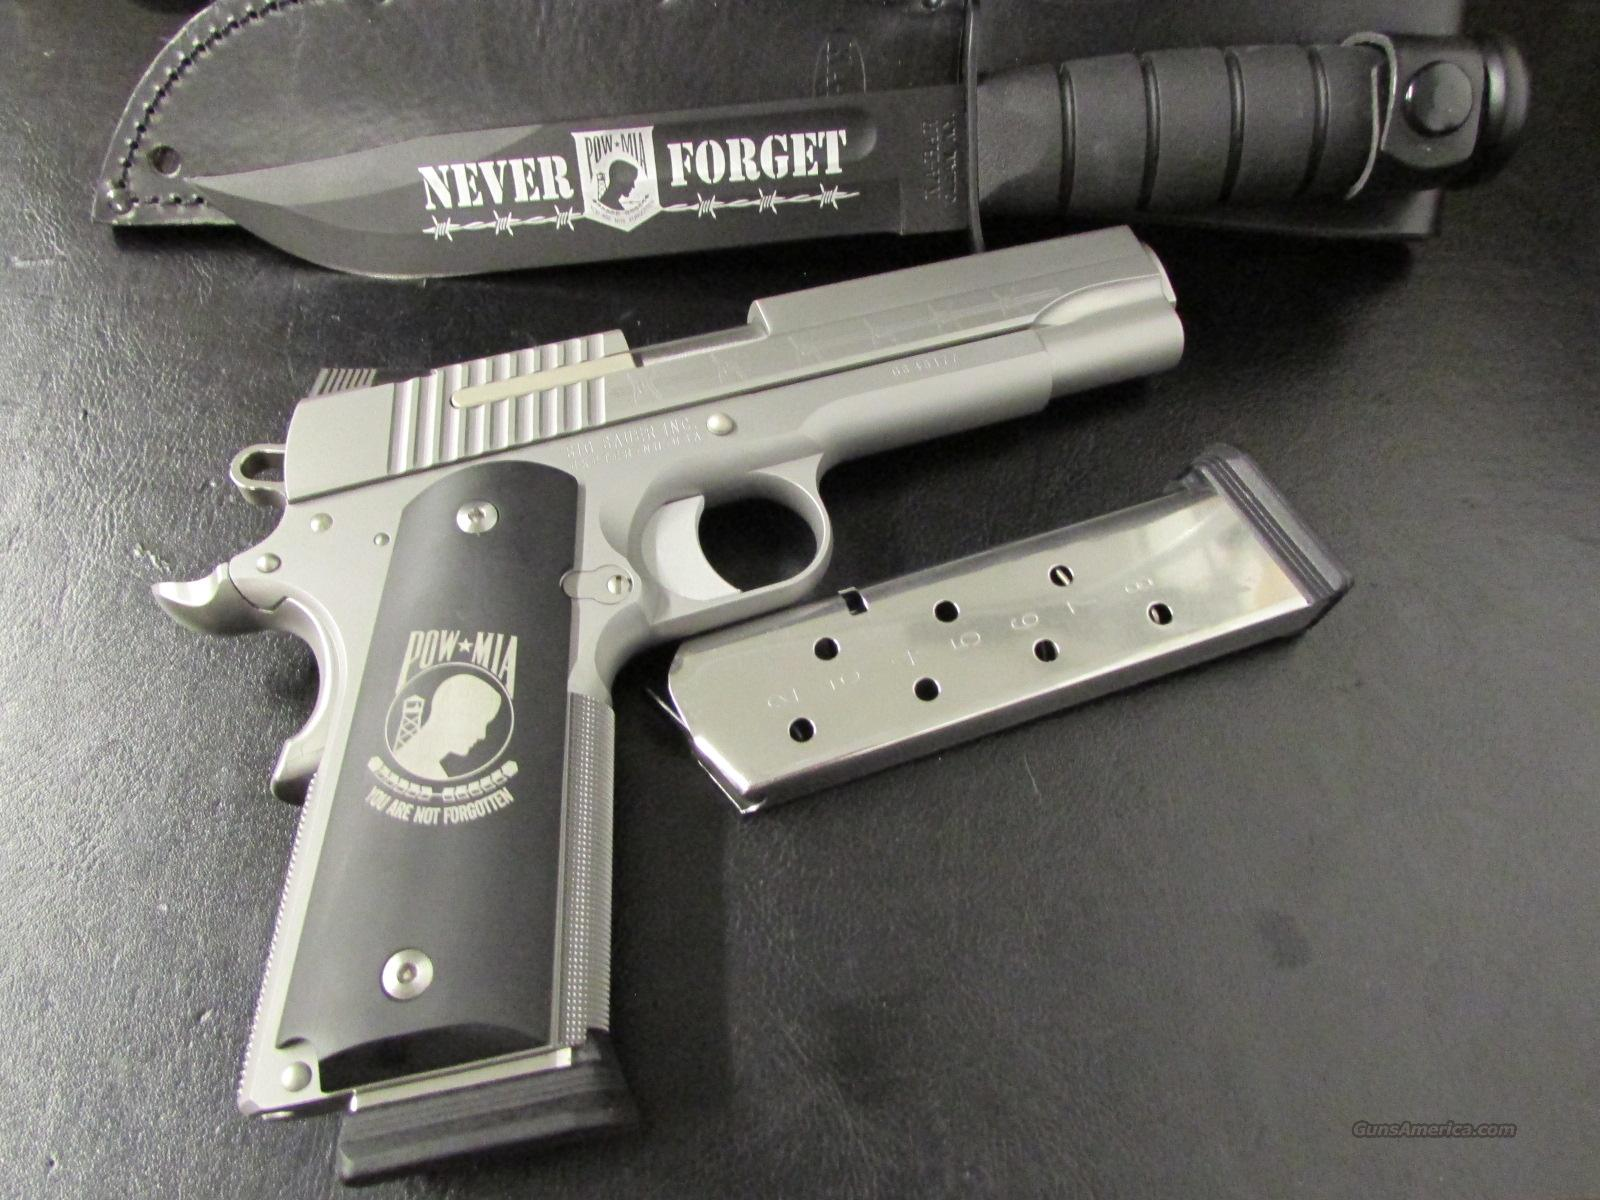 Sig Sauer Stainless 1911 POW-MIA .45 ACP with Knife & Storm Case  Guns > Pistols > Sig - Sauer/Sigarms Pistols > 1911